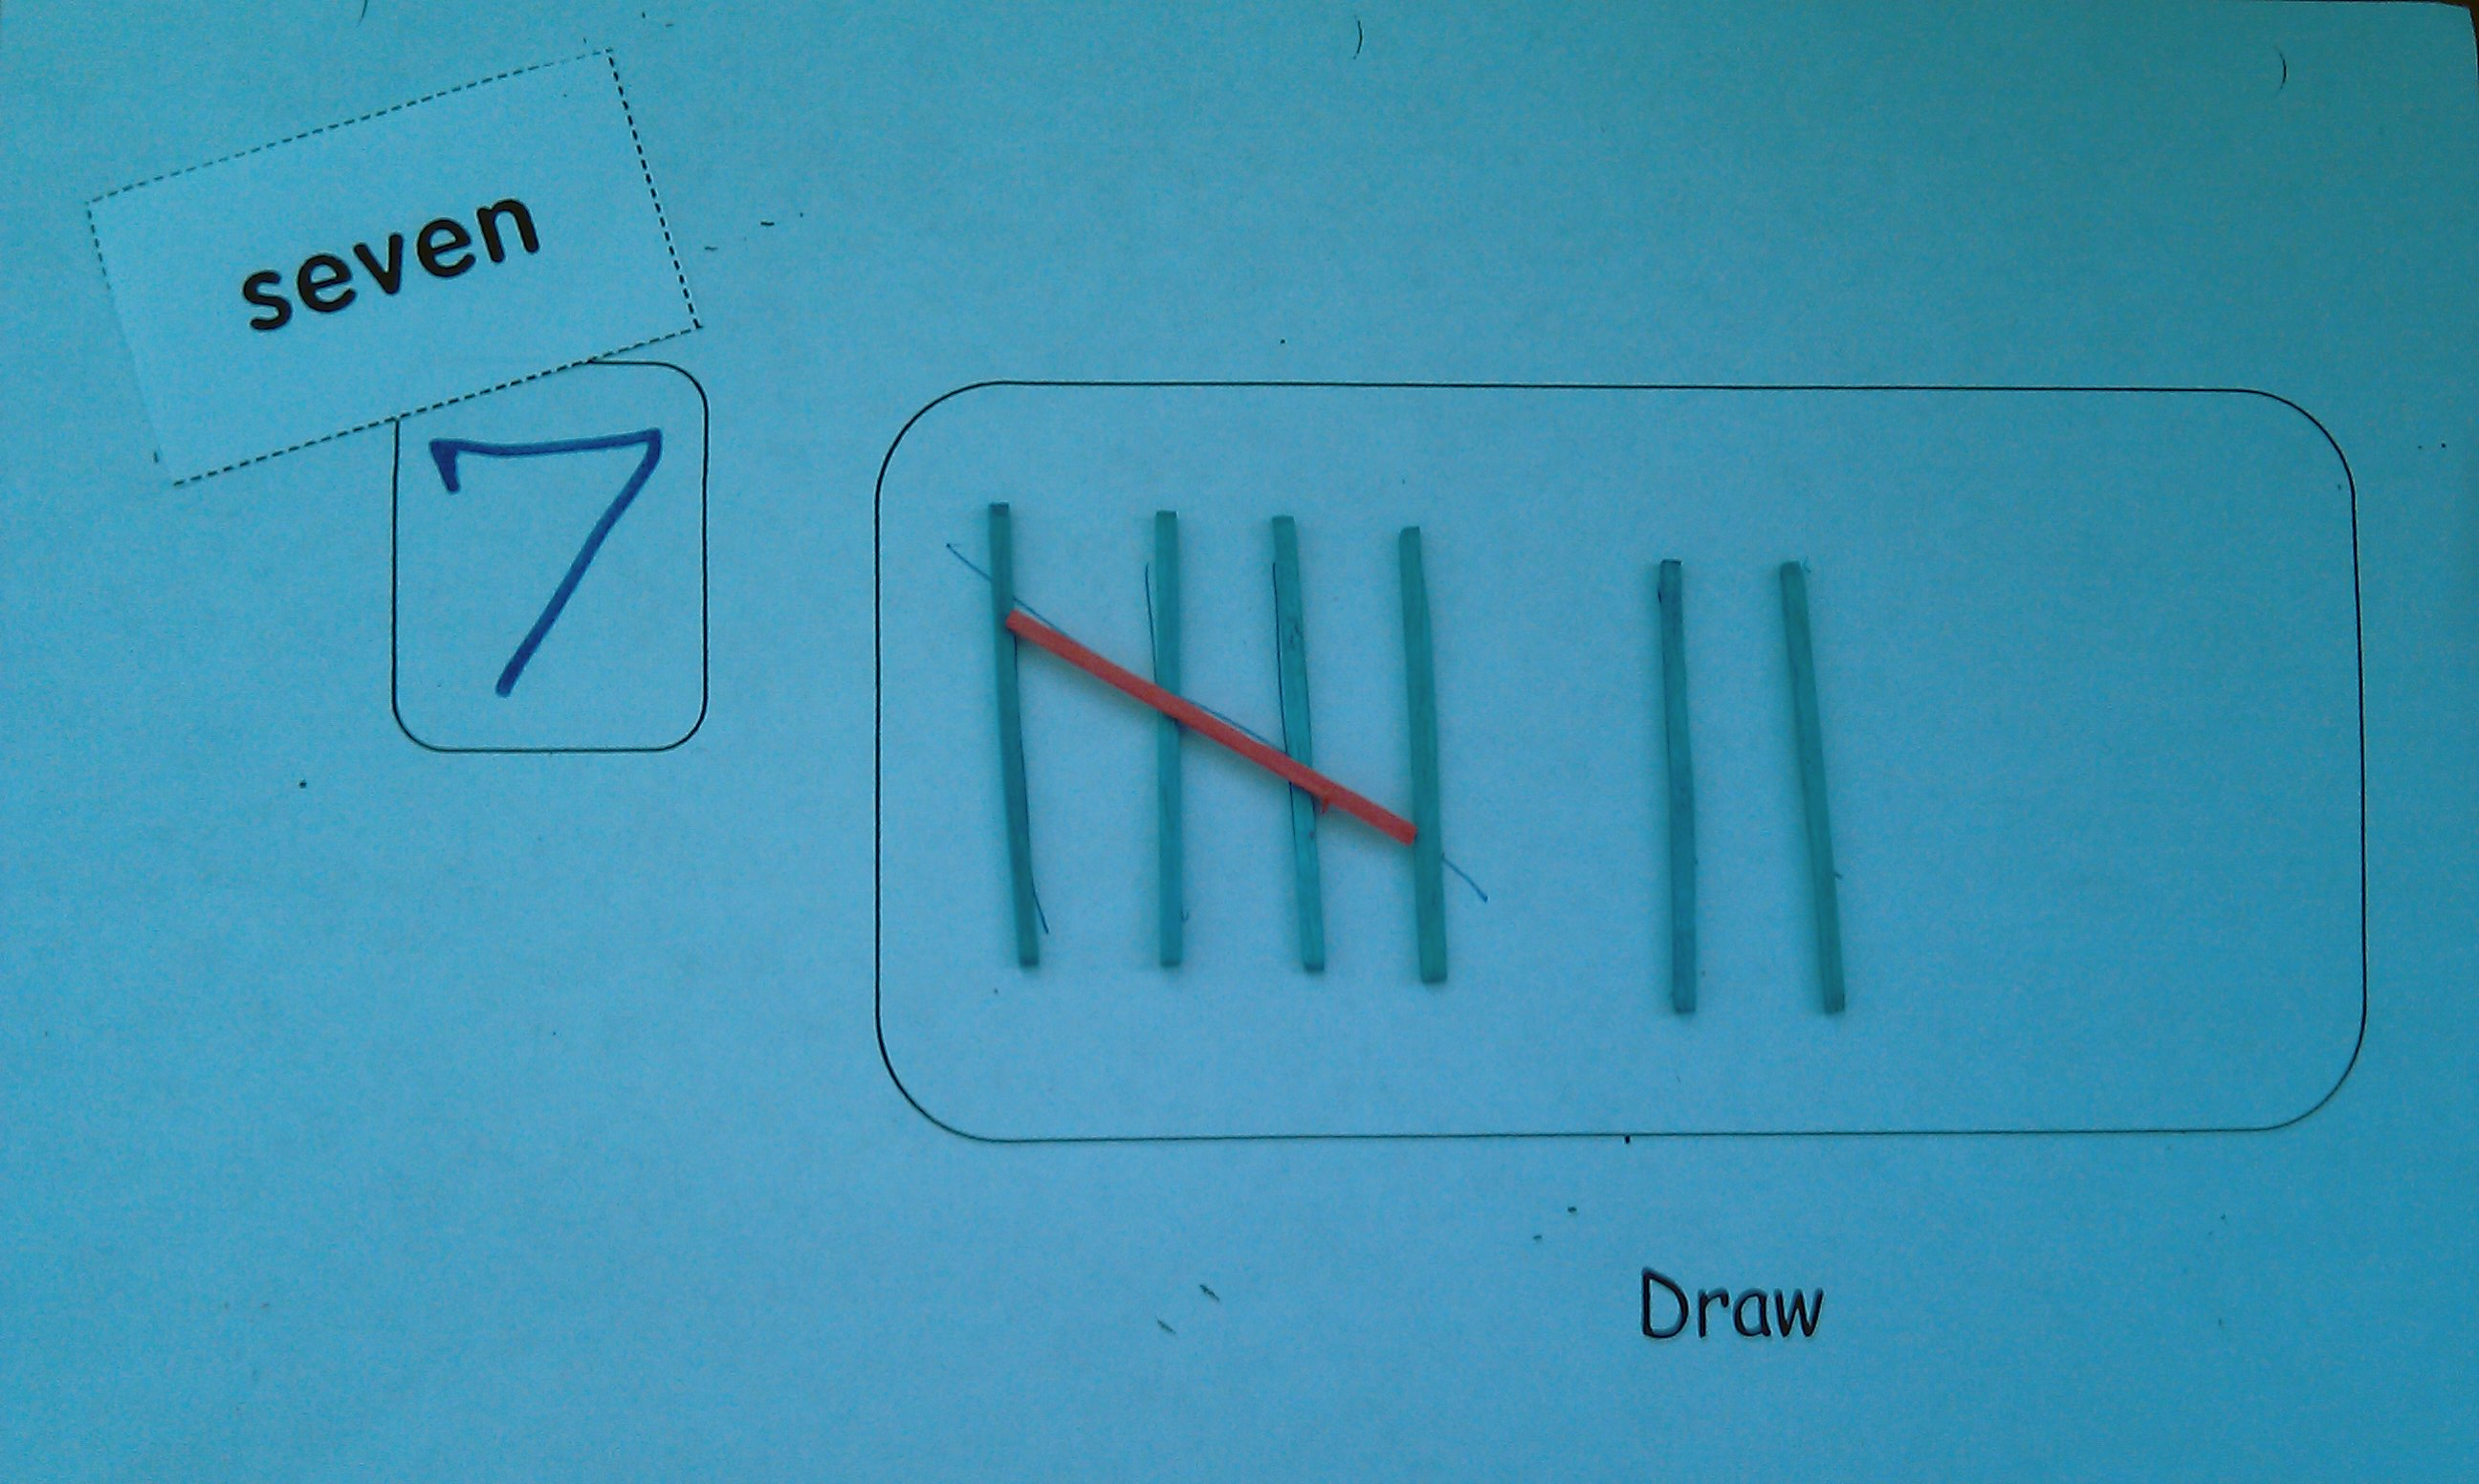 Tally Marks And Guided Math